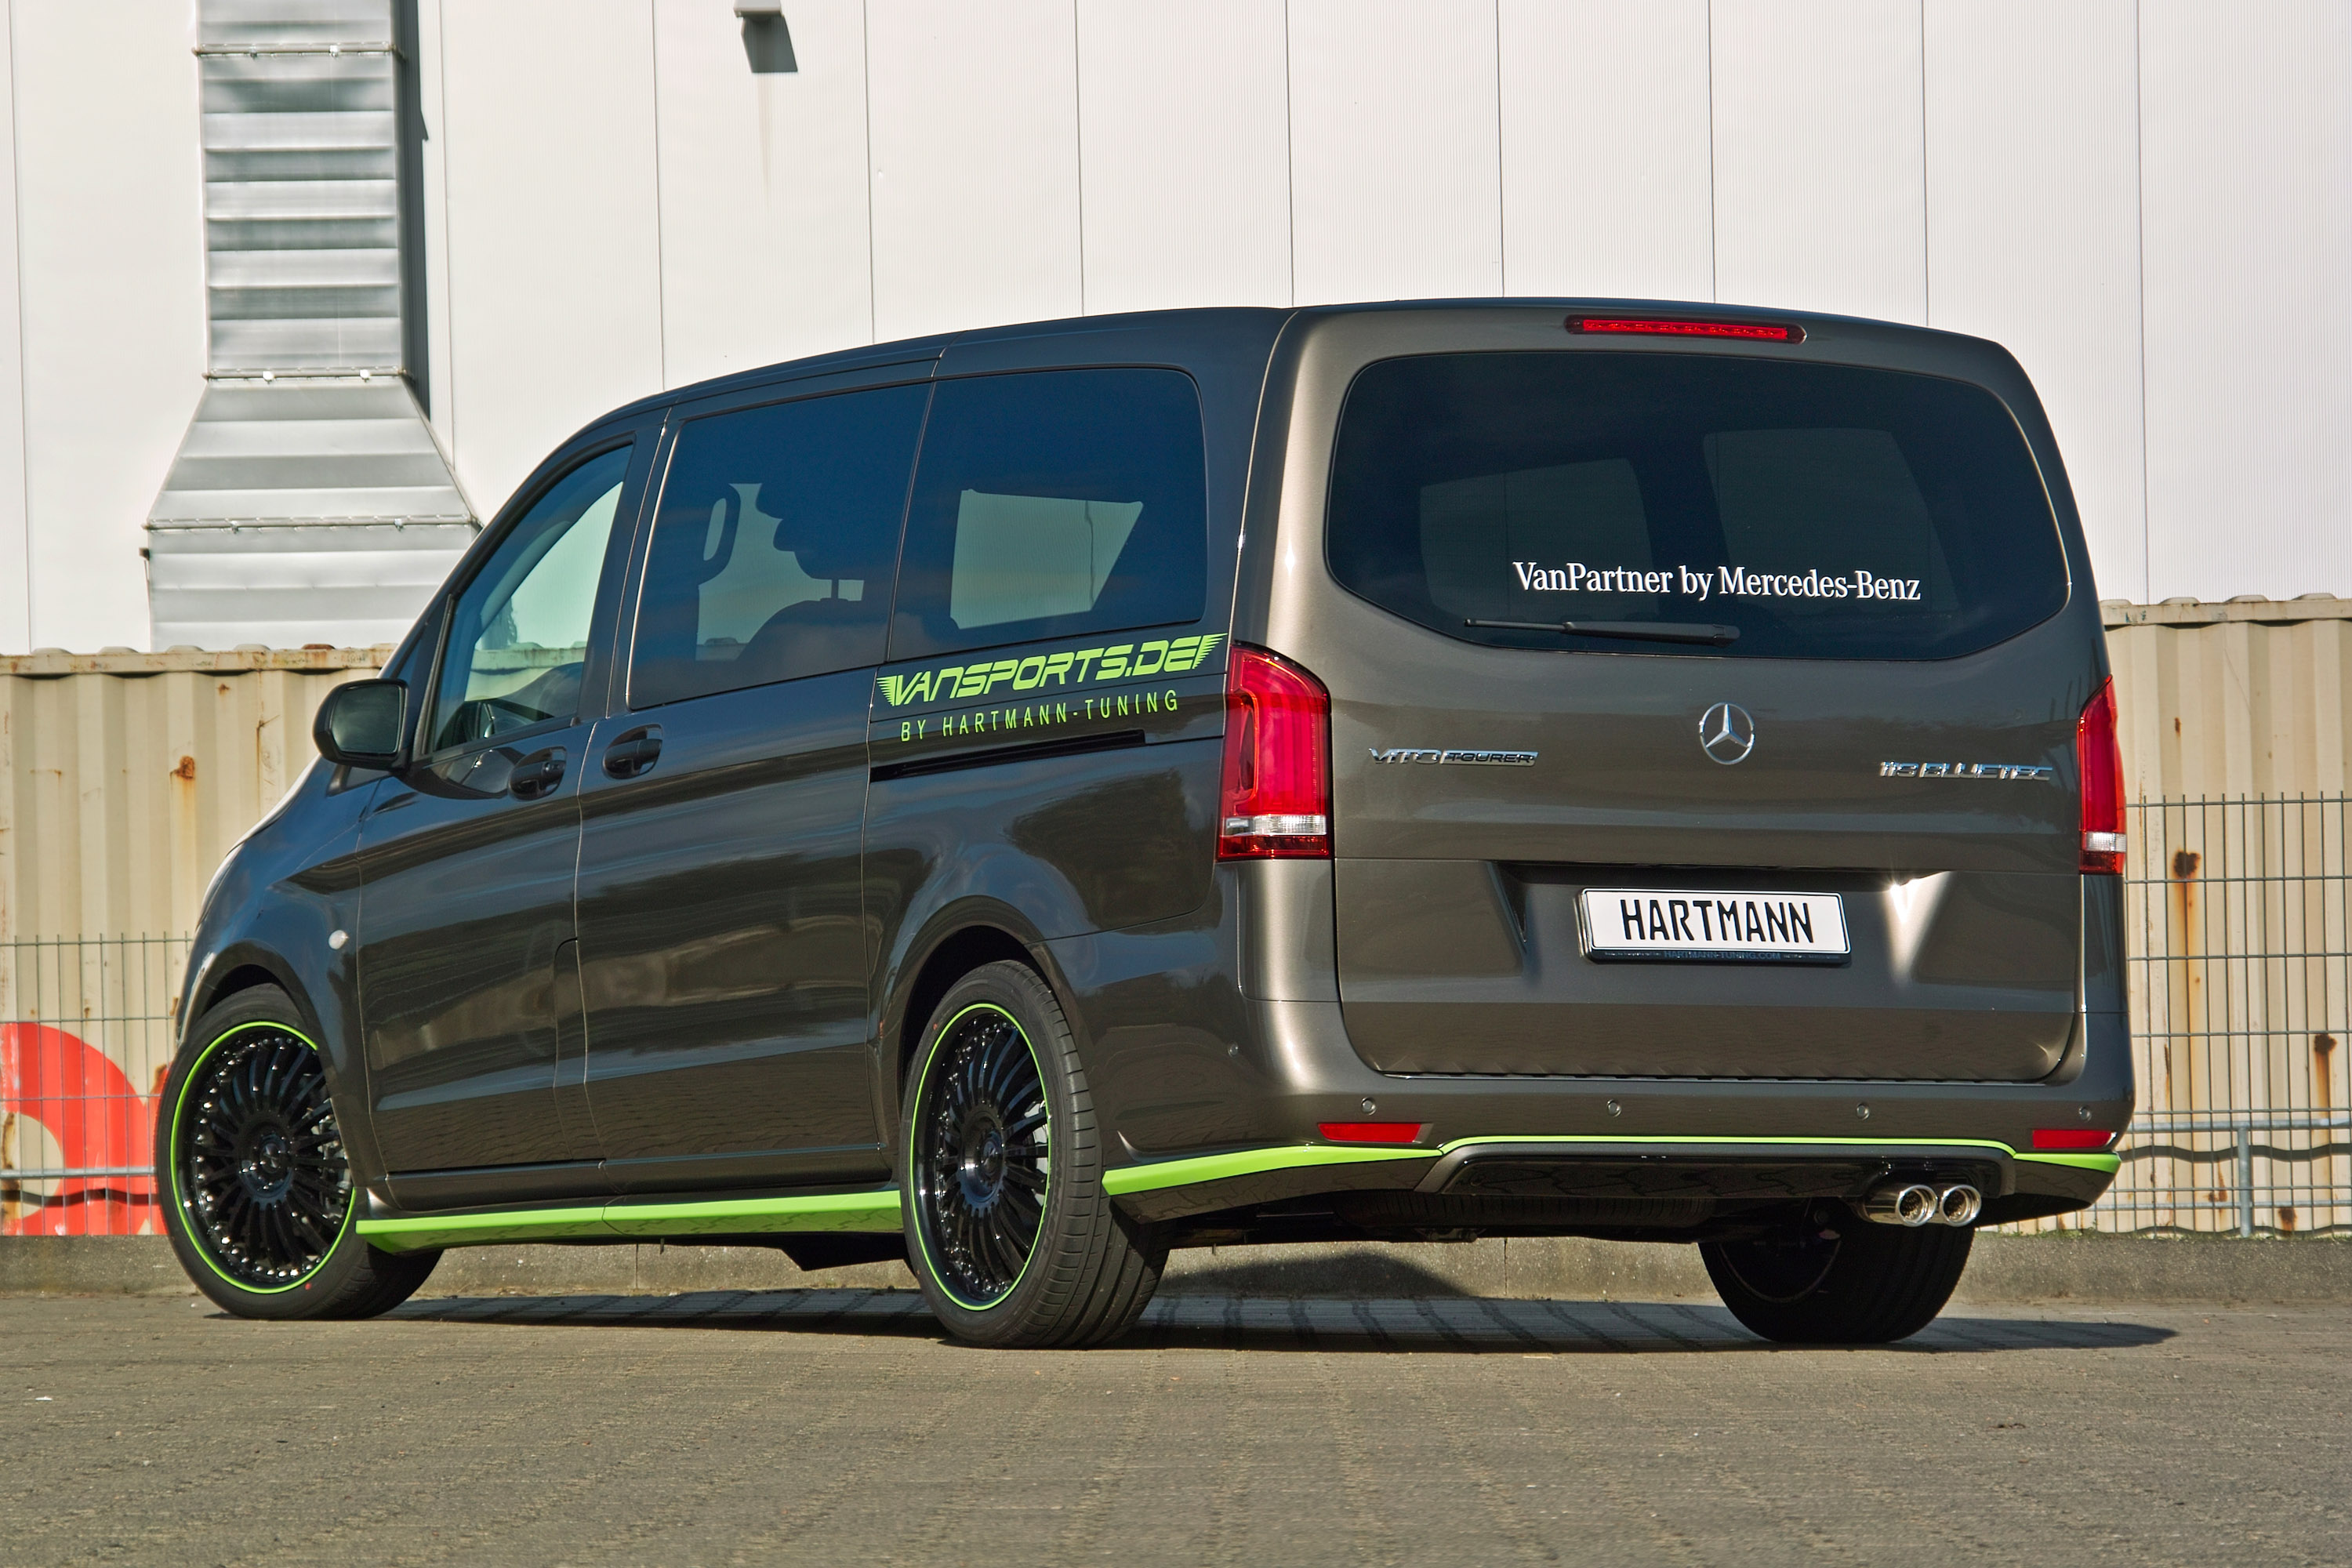 hartmann tuning 2014 yeni mercedes vito oto kokpit. Black Bedroom Furniture Sets. Home Design Ideas